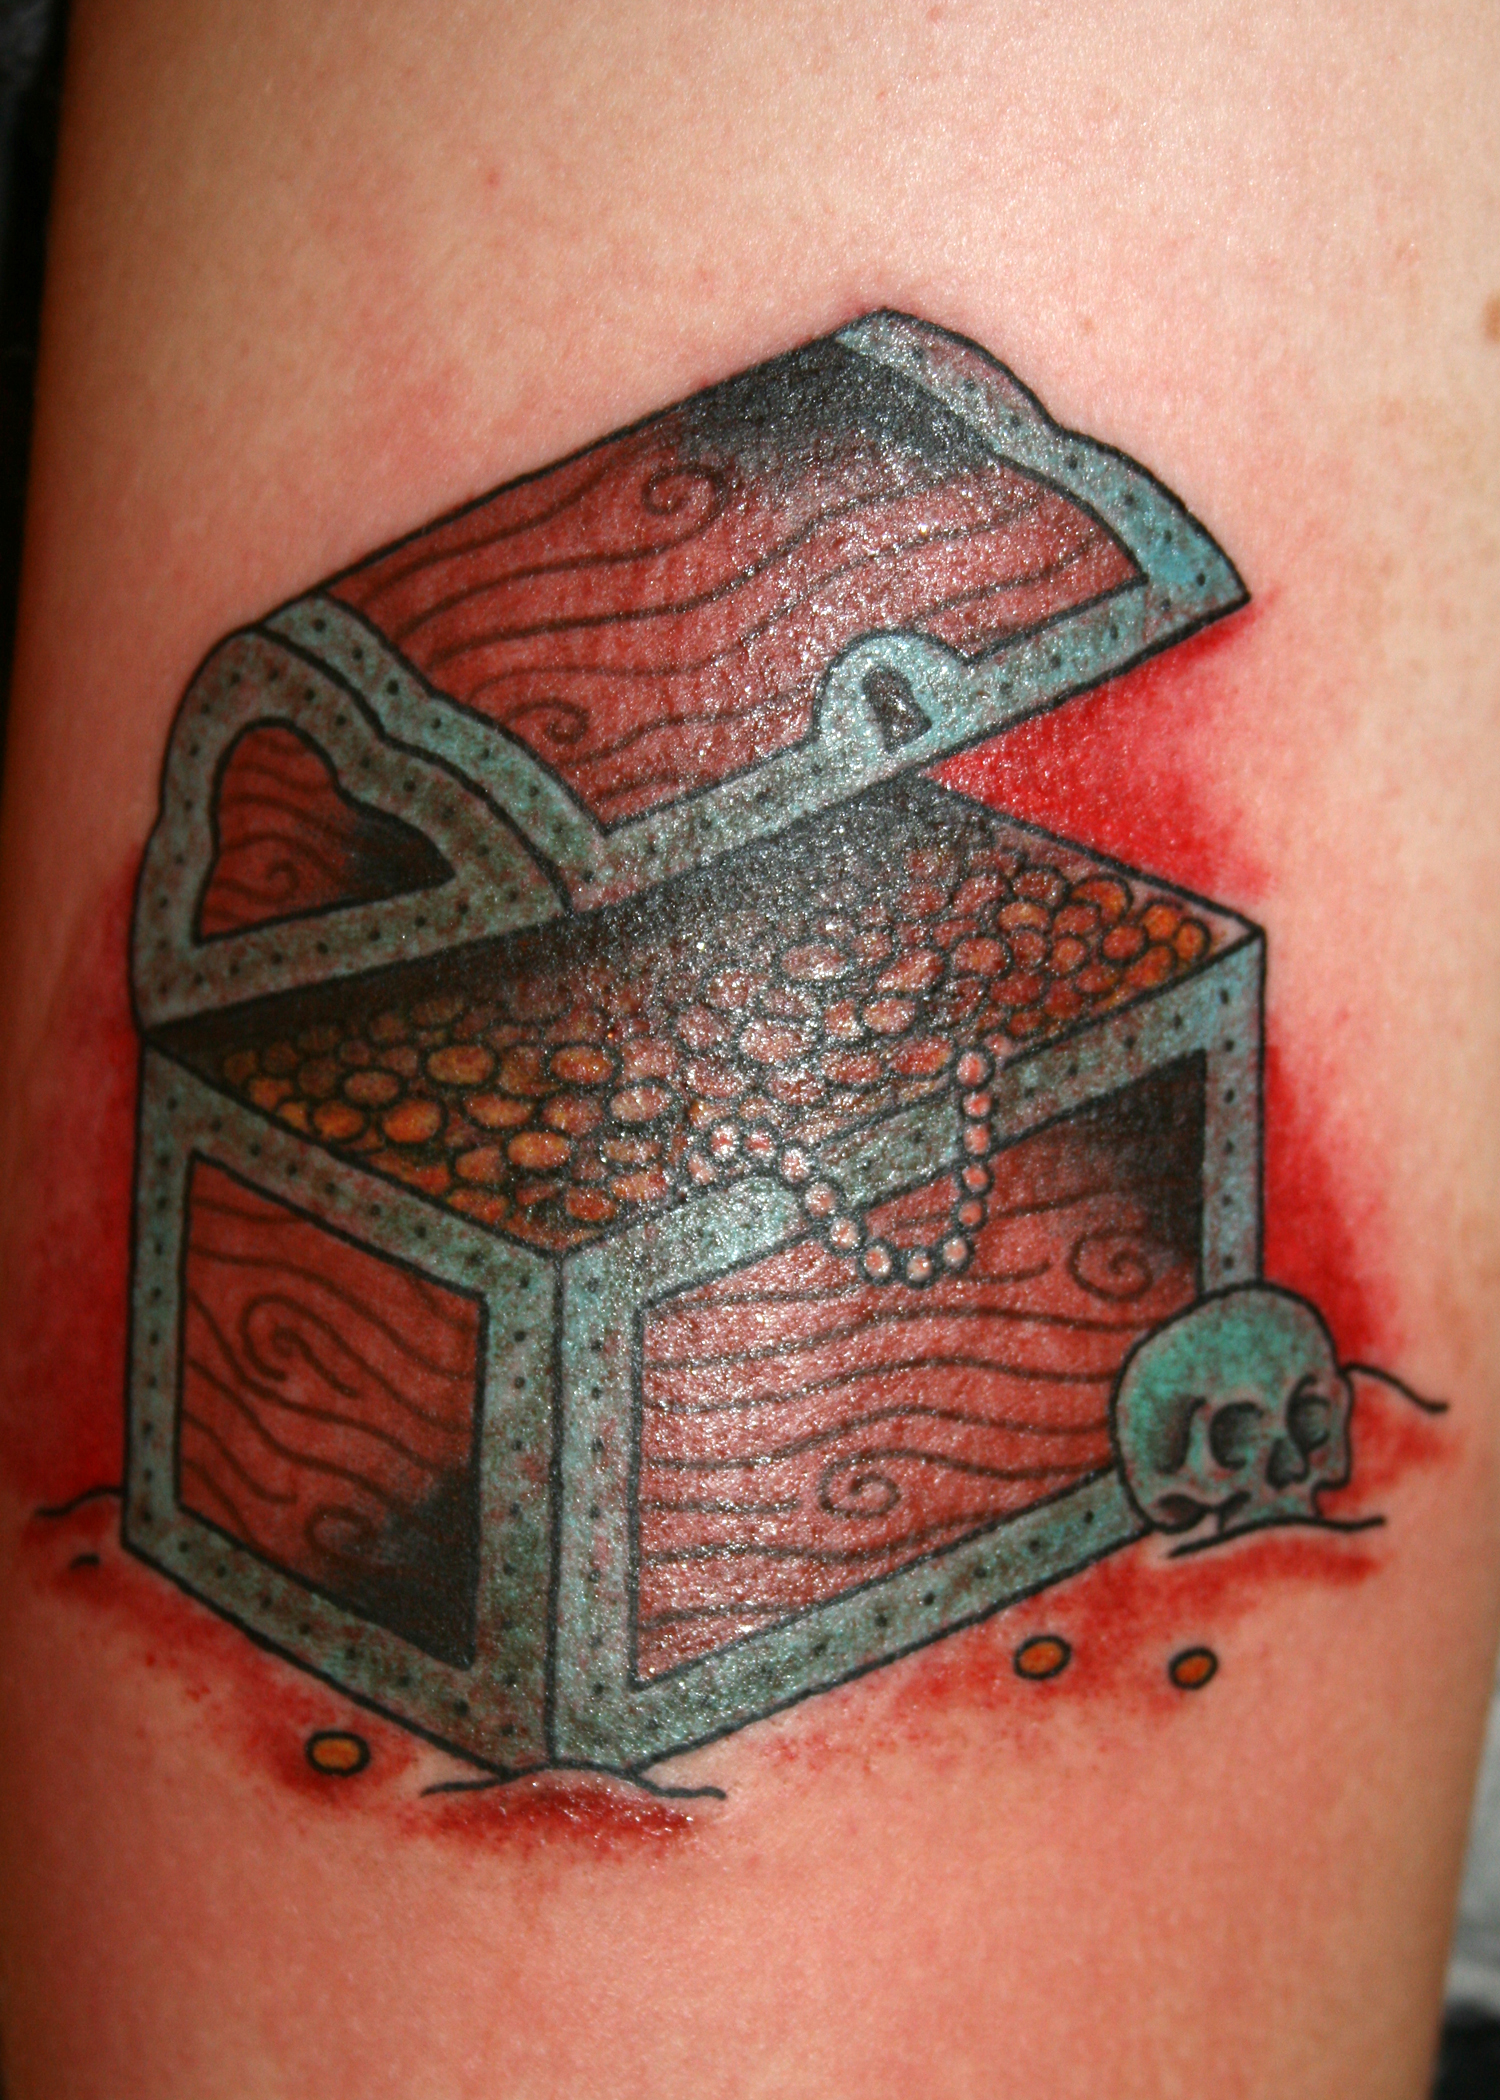 Treasure Chest Tattoo: Death Goes To The Winner